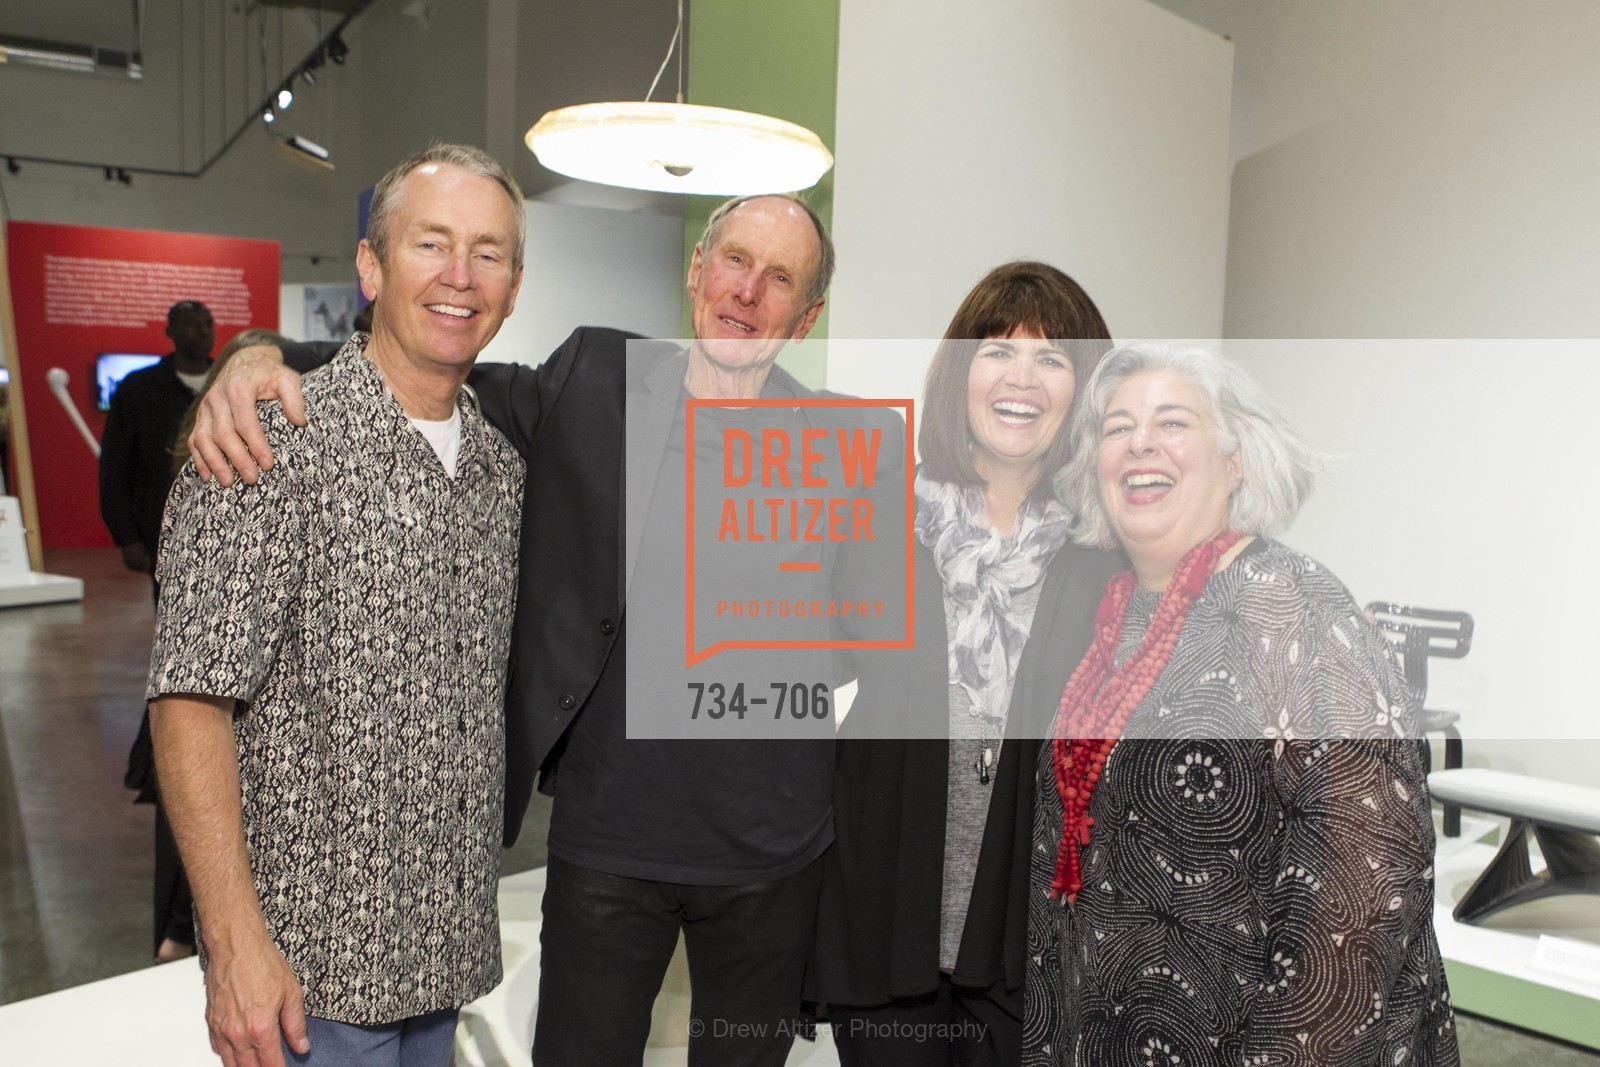 Andy Astor, JoAnn Edwards, Exhibit Opening at the MUSEUM OF CRAFT AND DESIGN - Hands Off: New Dutch Design at the Confluence of Technology & Craft, US, May 7th, 2015,Drew Altizer, Drew Altizer Photography, full-service agency, private events, San Francisco photographer, photographer california